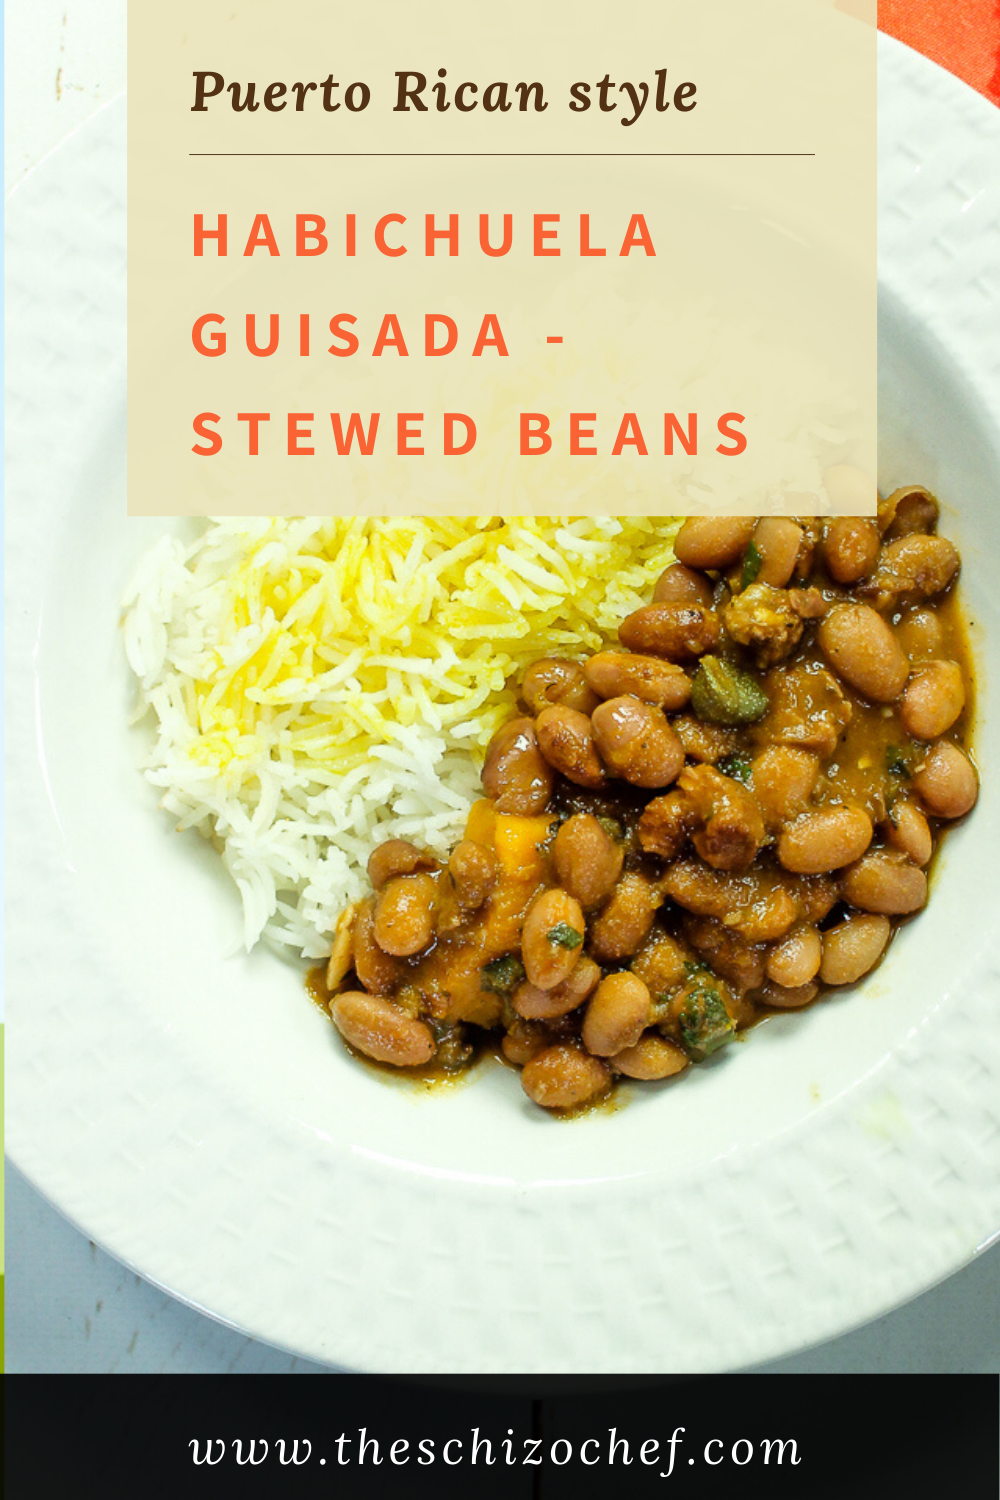 plate of rice and Habichuela Guisada - Puerto Rican Stewed Beans with text